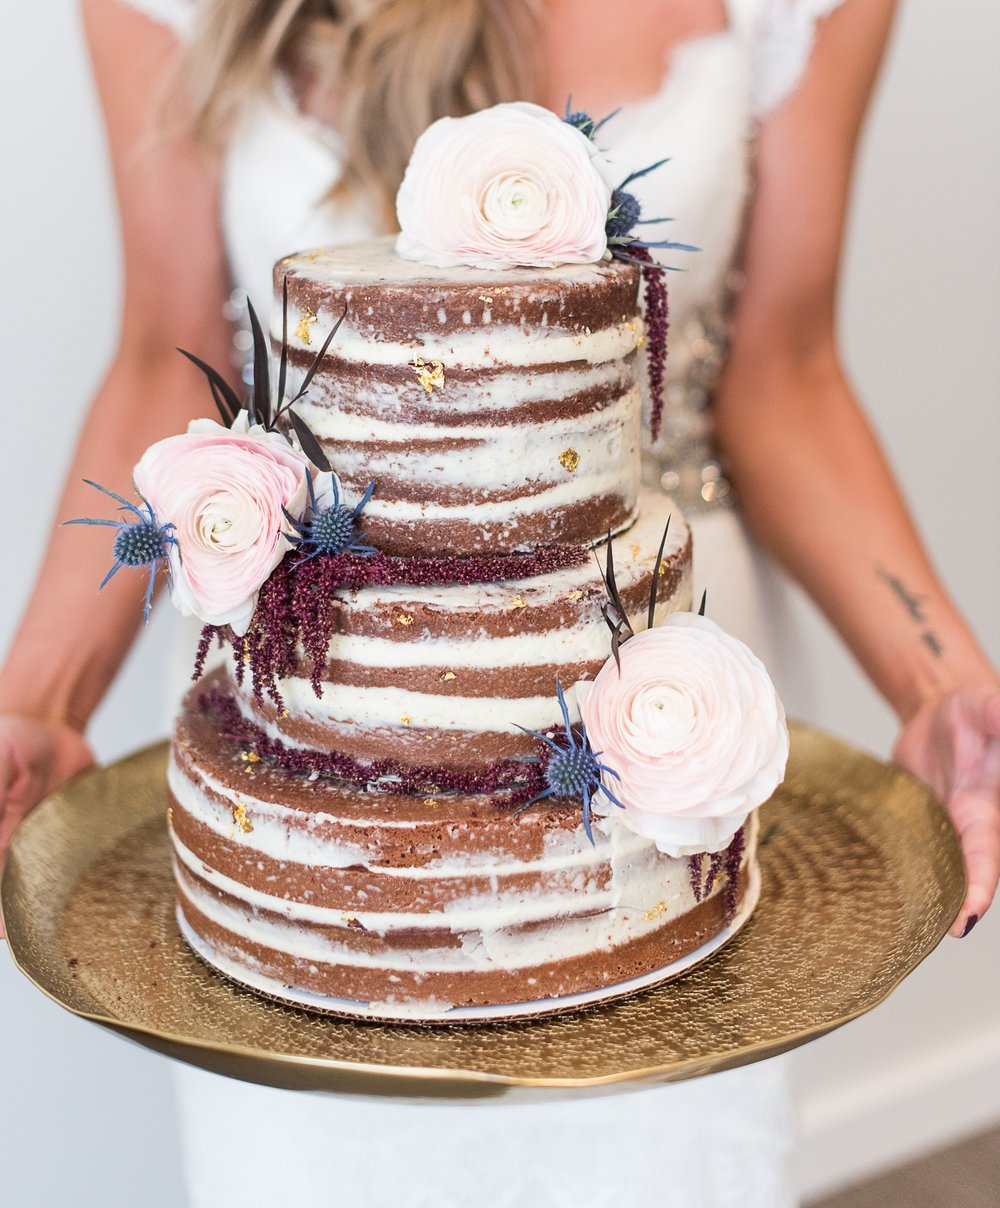 WEDDINGS - Stand out from the crowd with your customized display of handcrafted bite size desserts that every guest will love. Astonish your guests with an enchanting cake that embellishes the romance and love of every moment.